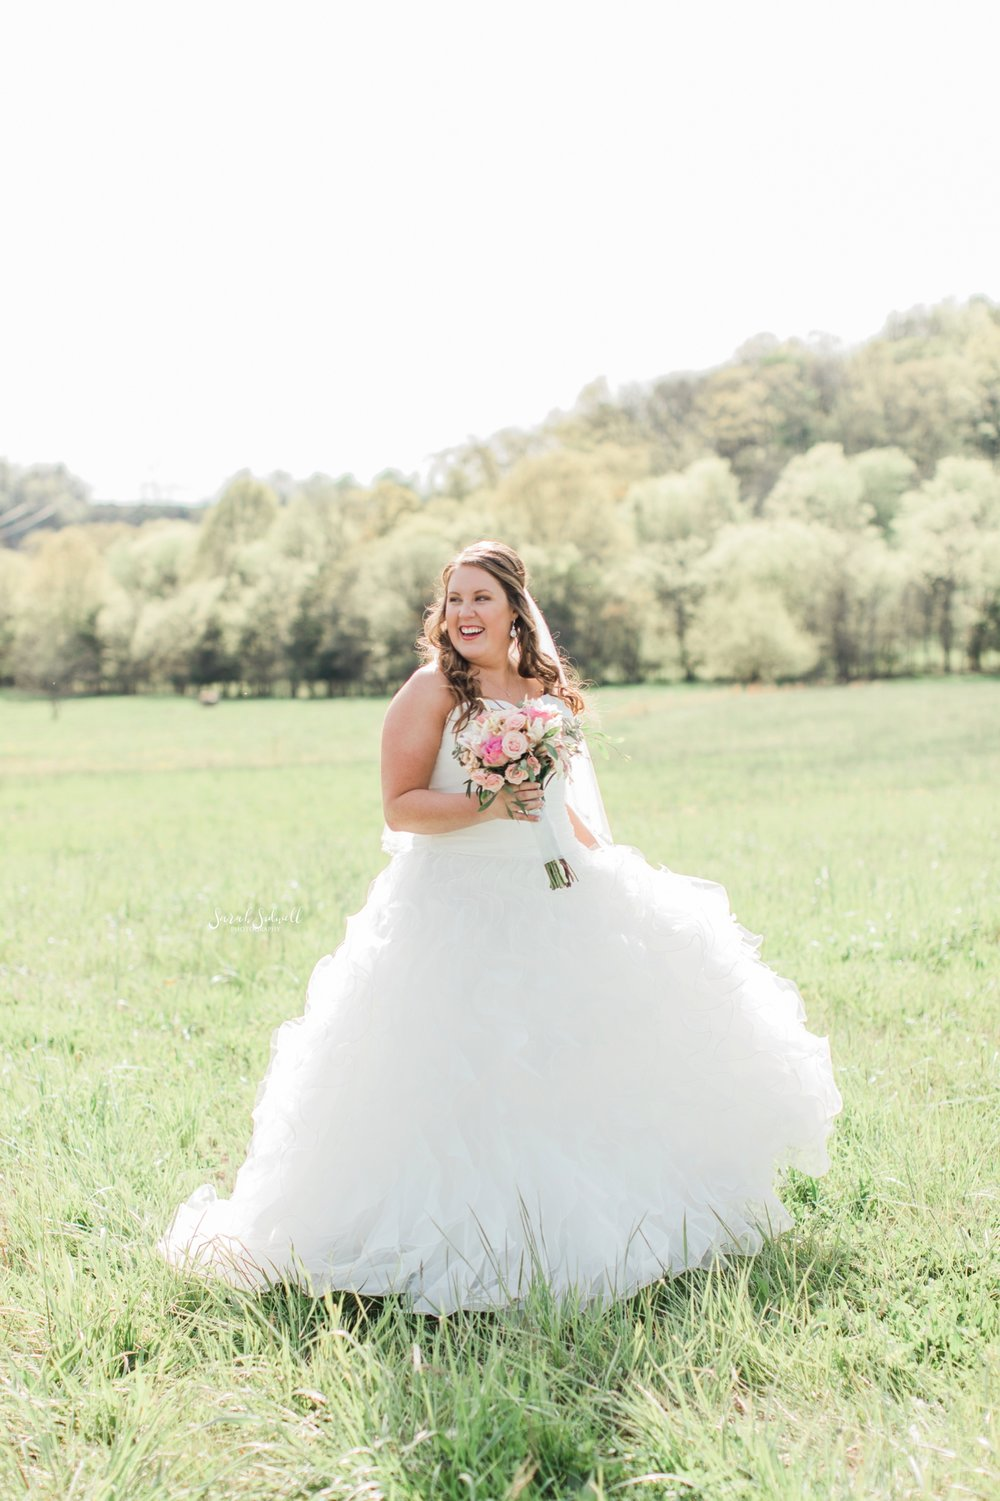 A bride stays in a green field, holding her bouquet.